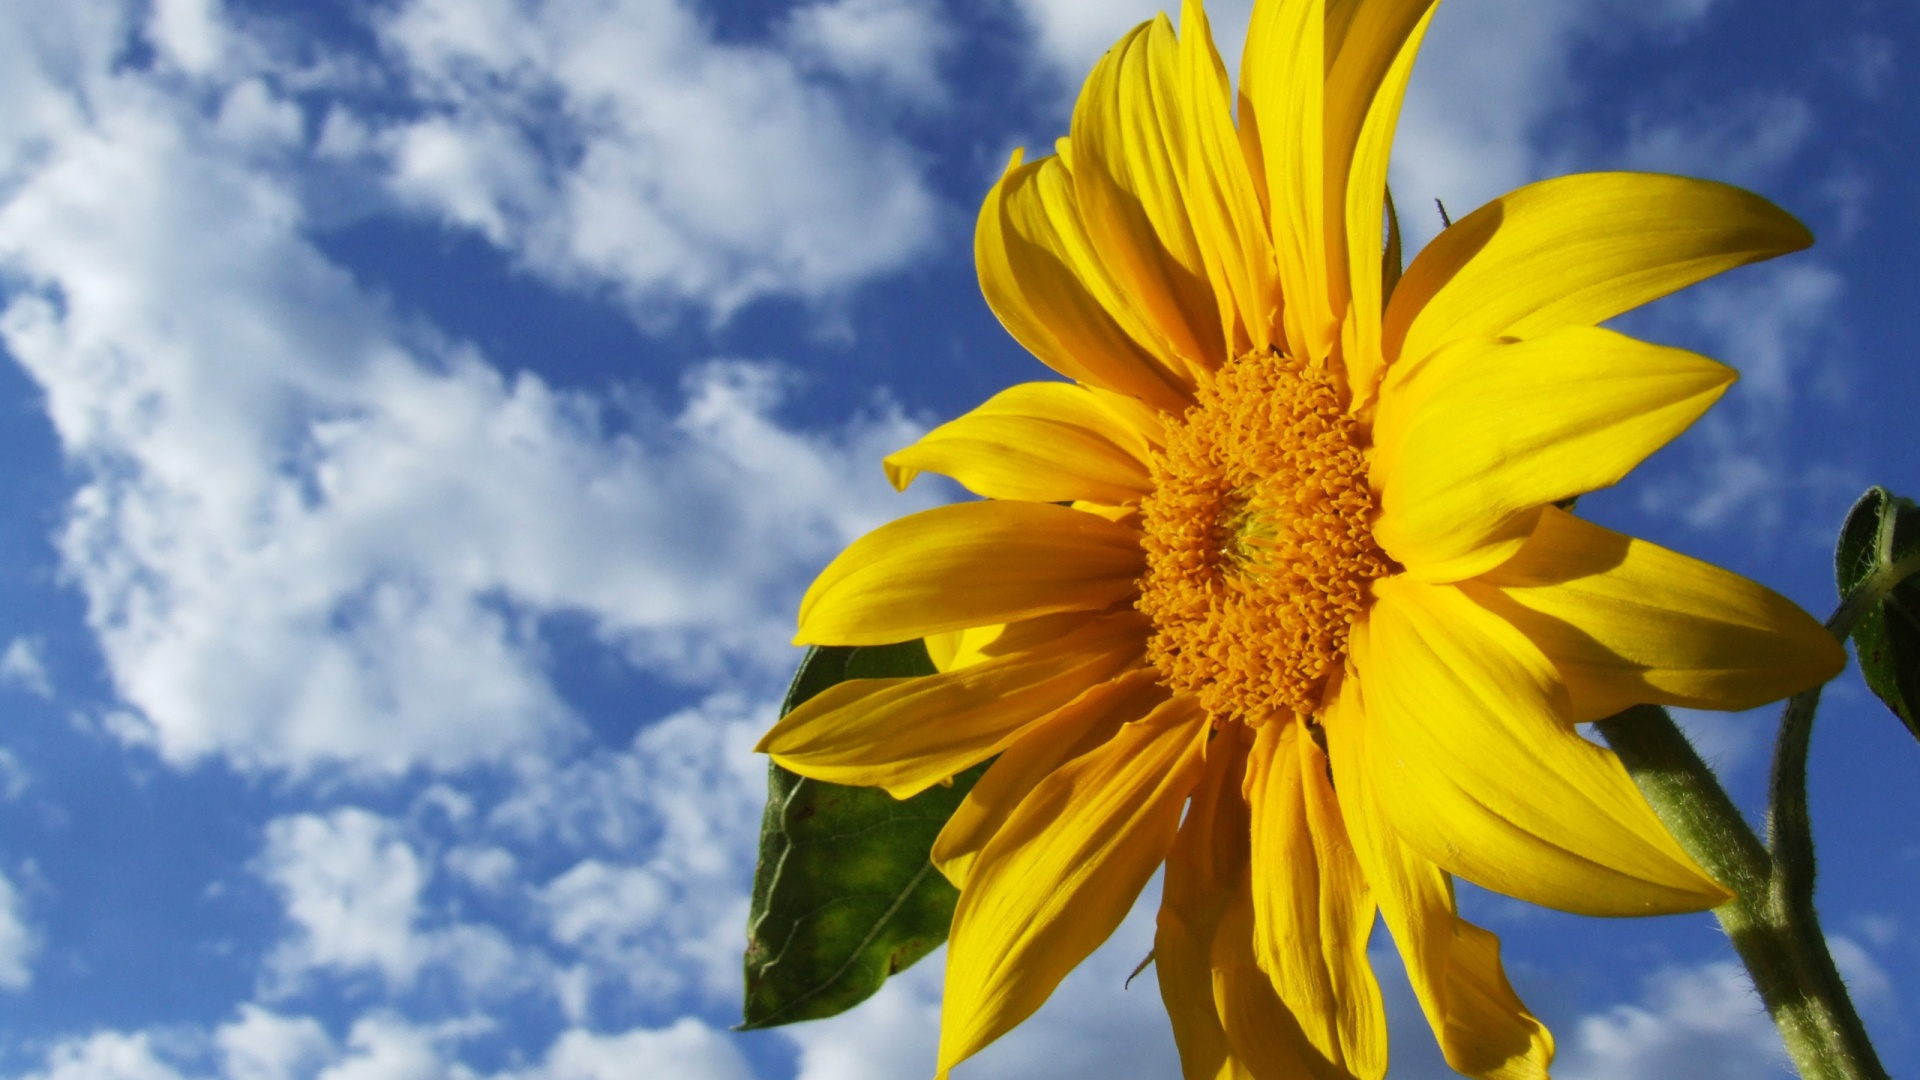 Image Result For Sunflower Screensavers Free Hd Wallpaper